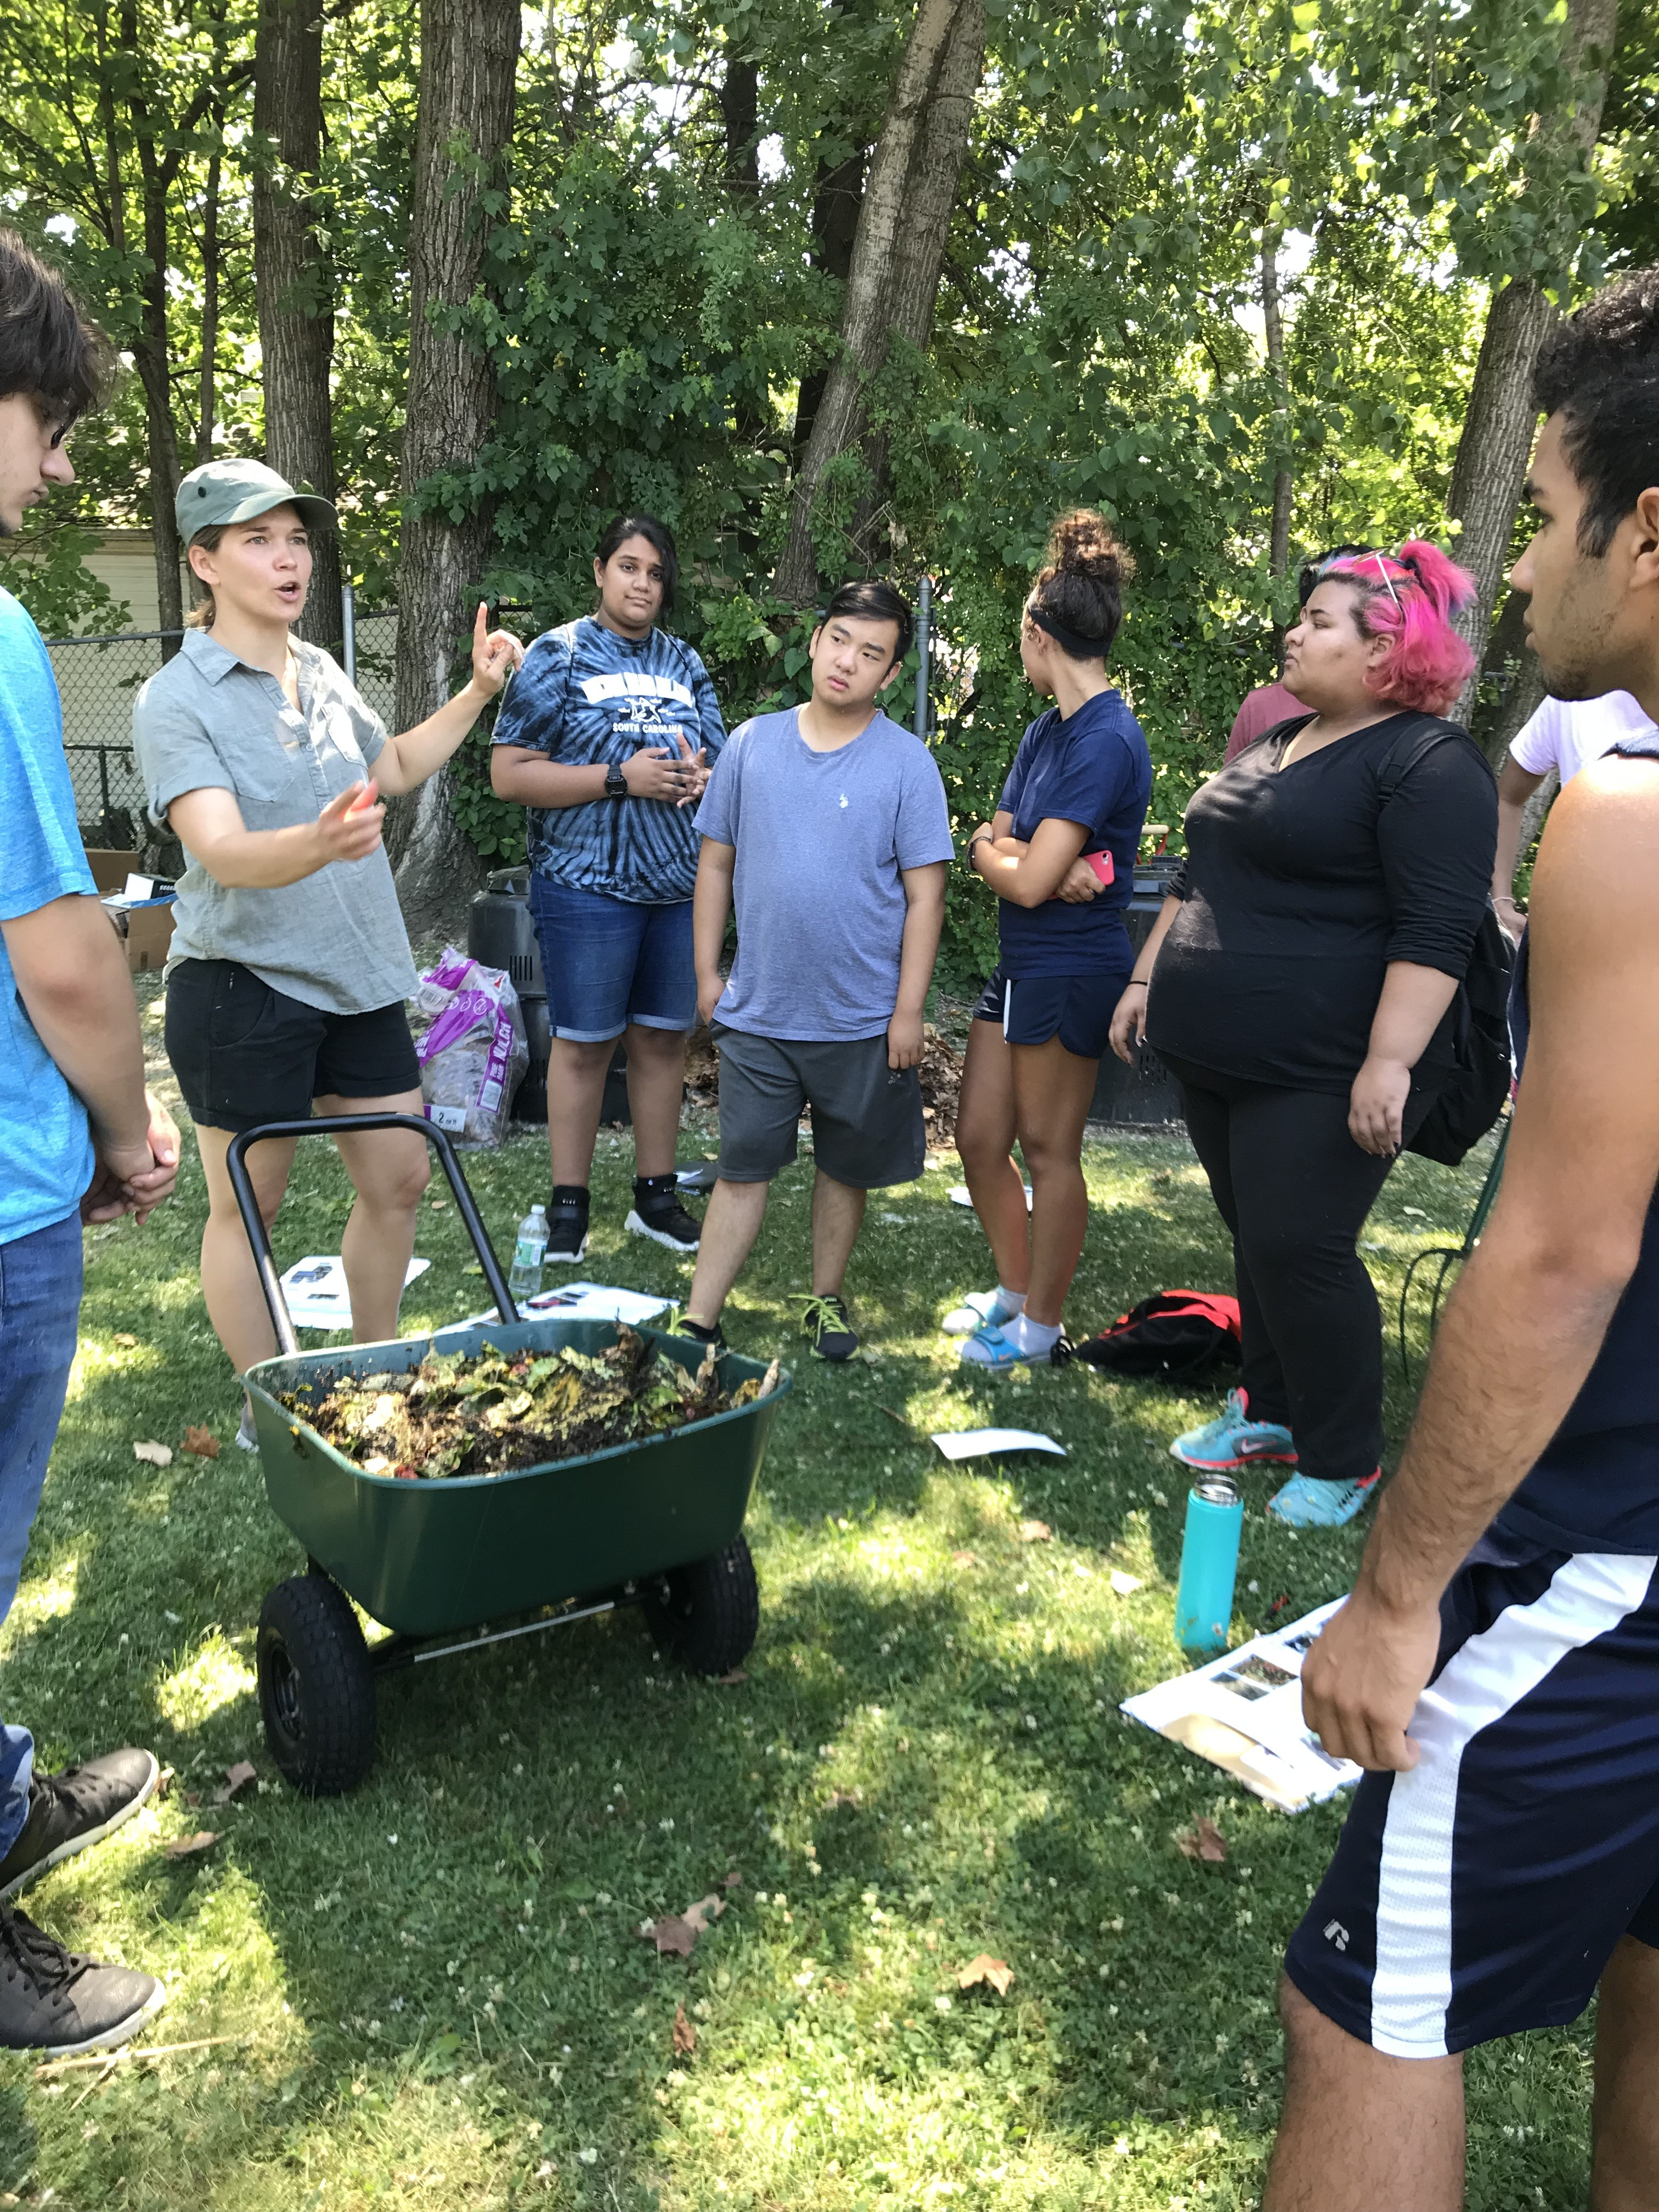 ILSR's Linda Bilsens Brolis works with participants to explore different compost recipes.